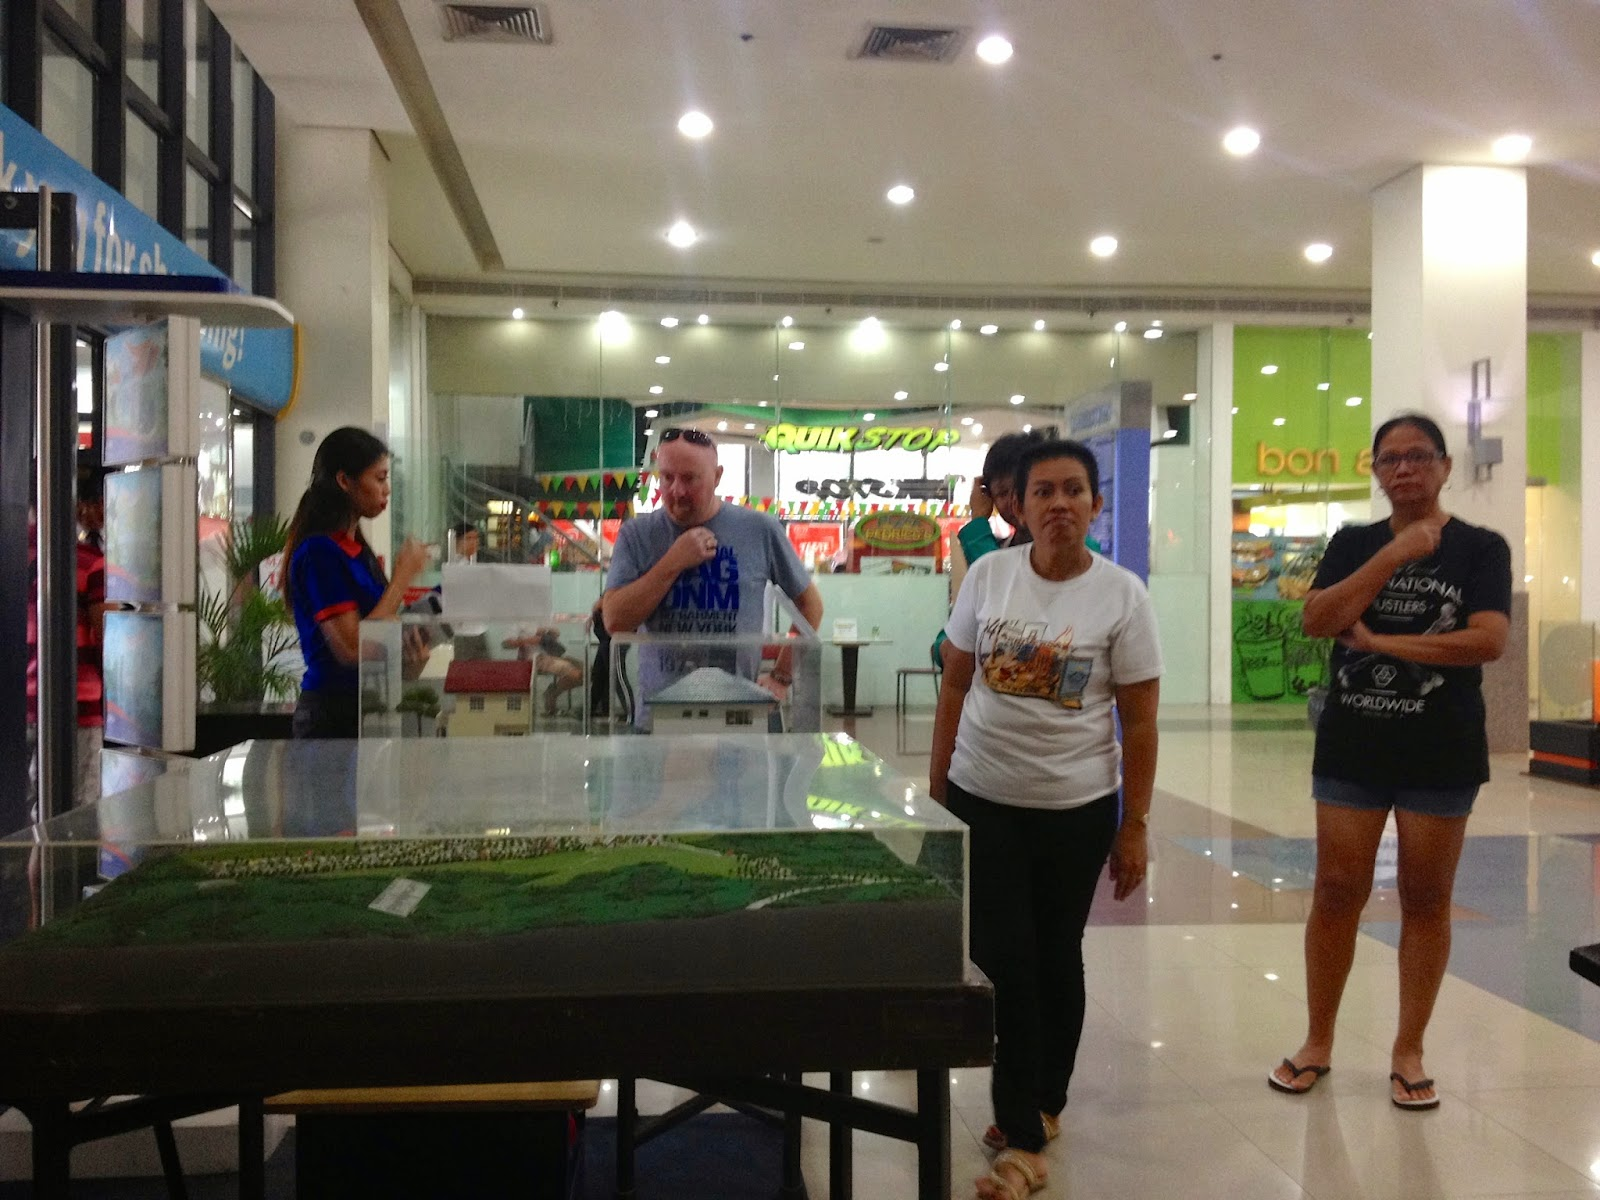 Robinson Homes Exhibit in Cebu